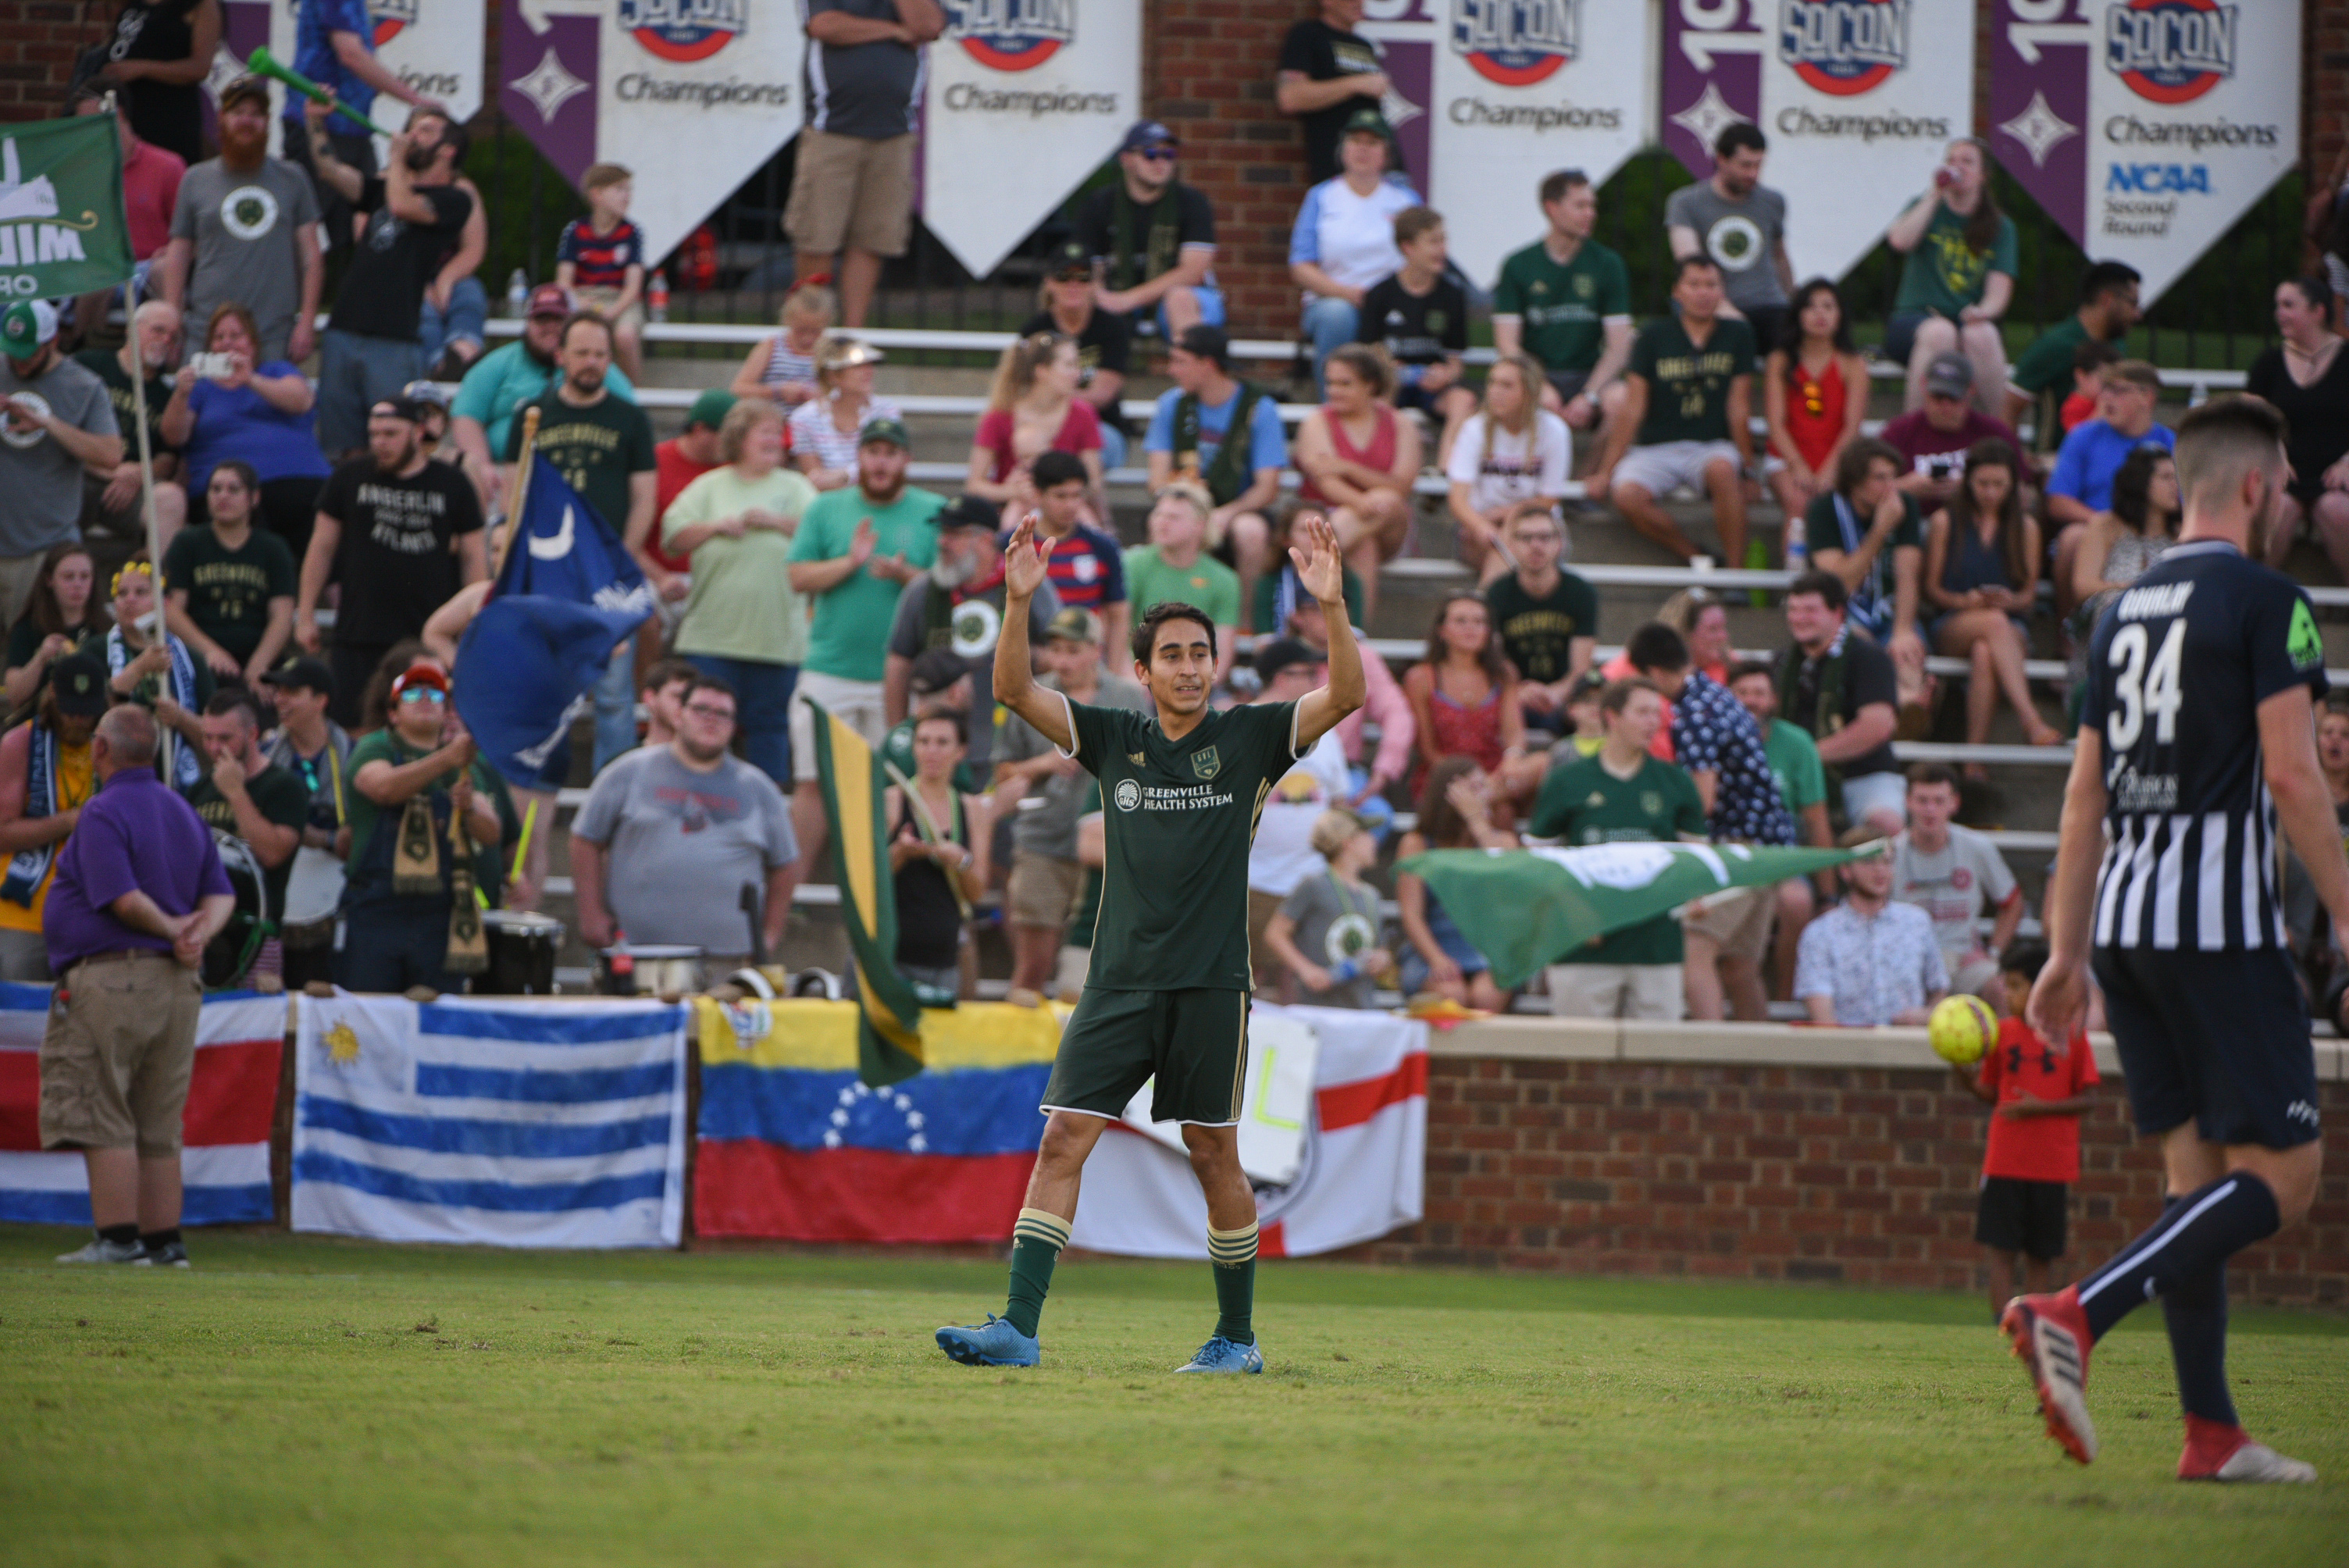 BOYS IN GREEN: MANUEL PEREZ